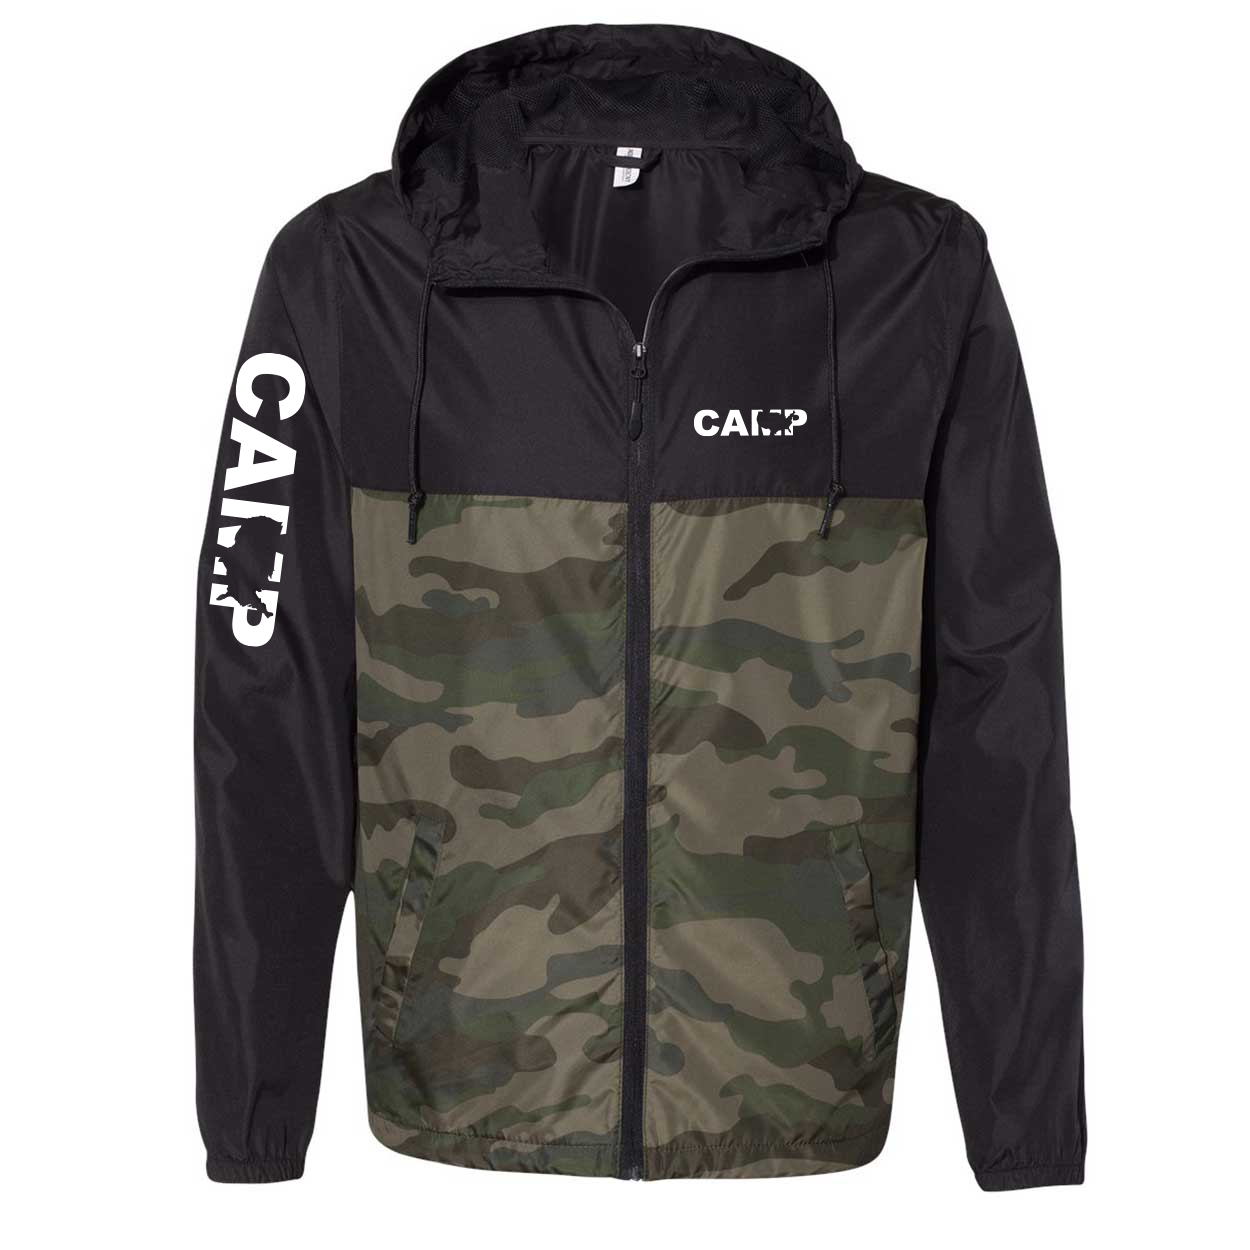 Camp United States Classic Lightweight Windbreaker Black/Forest Camo (White Logo)